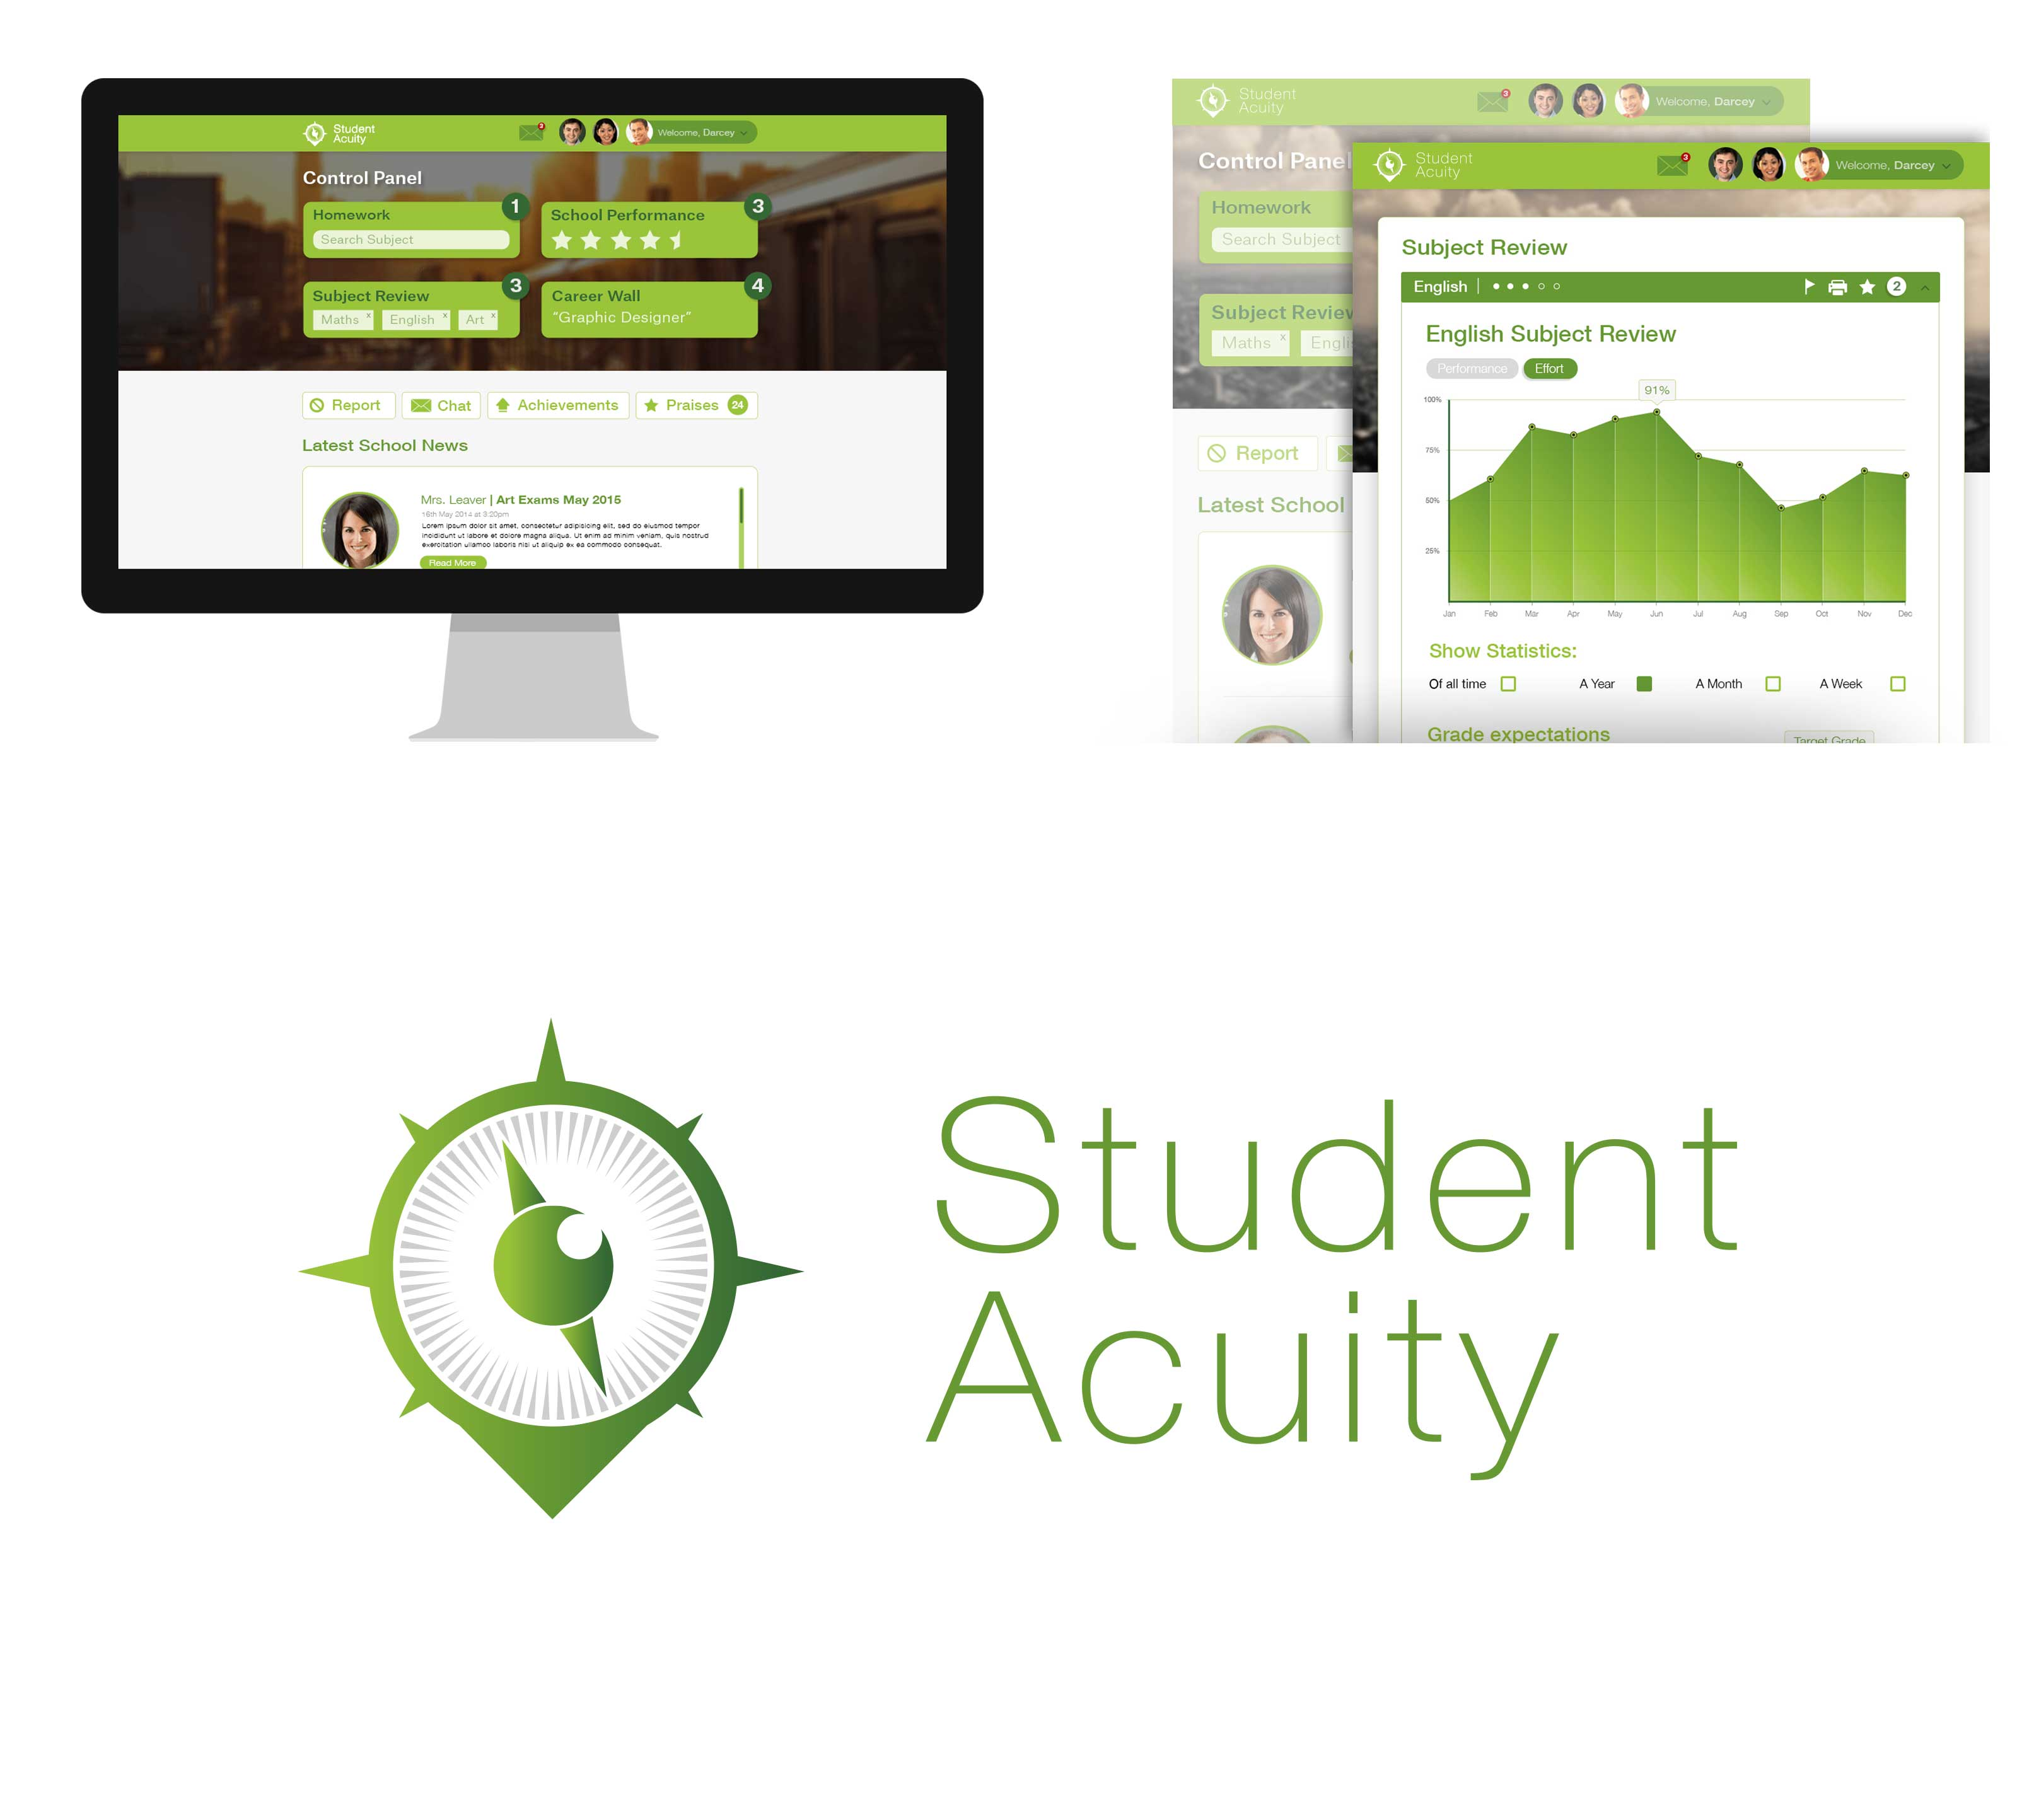 Student Acuity 8